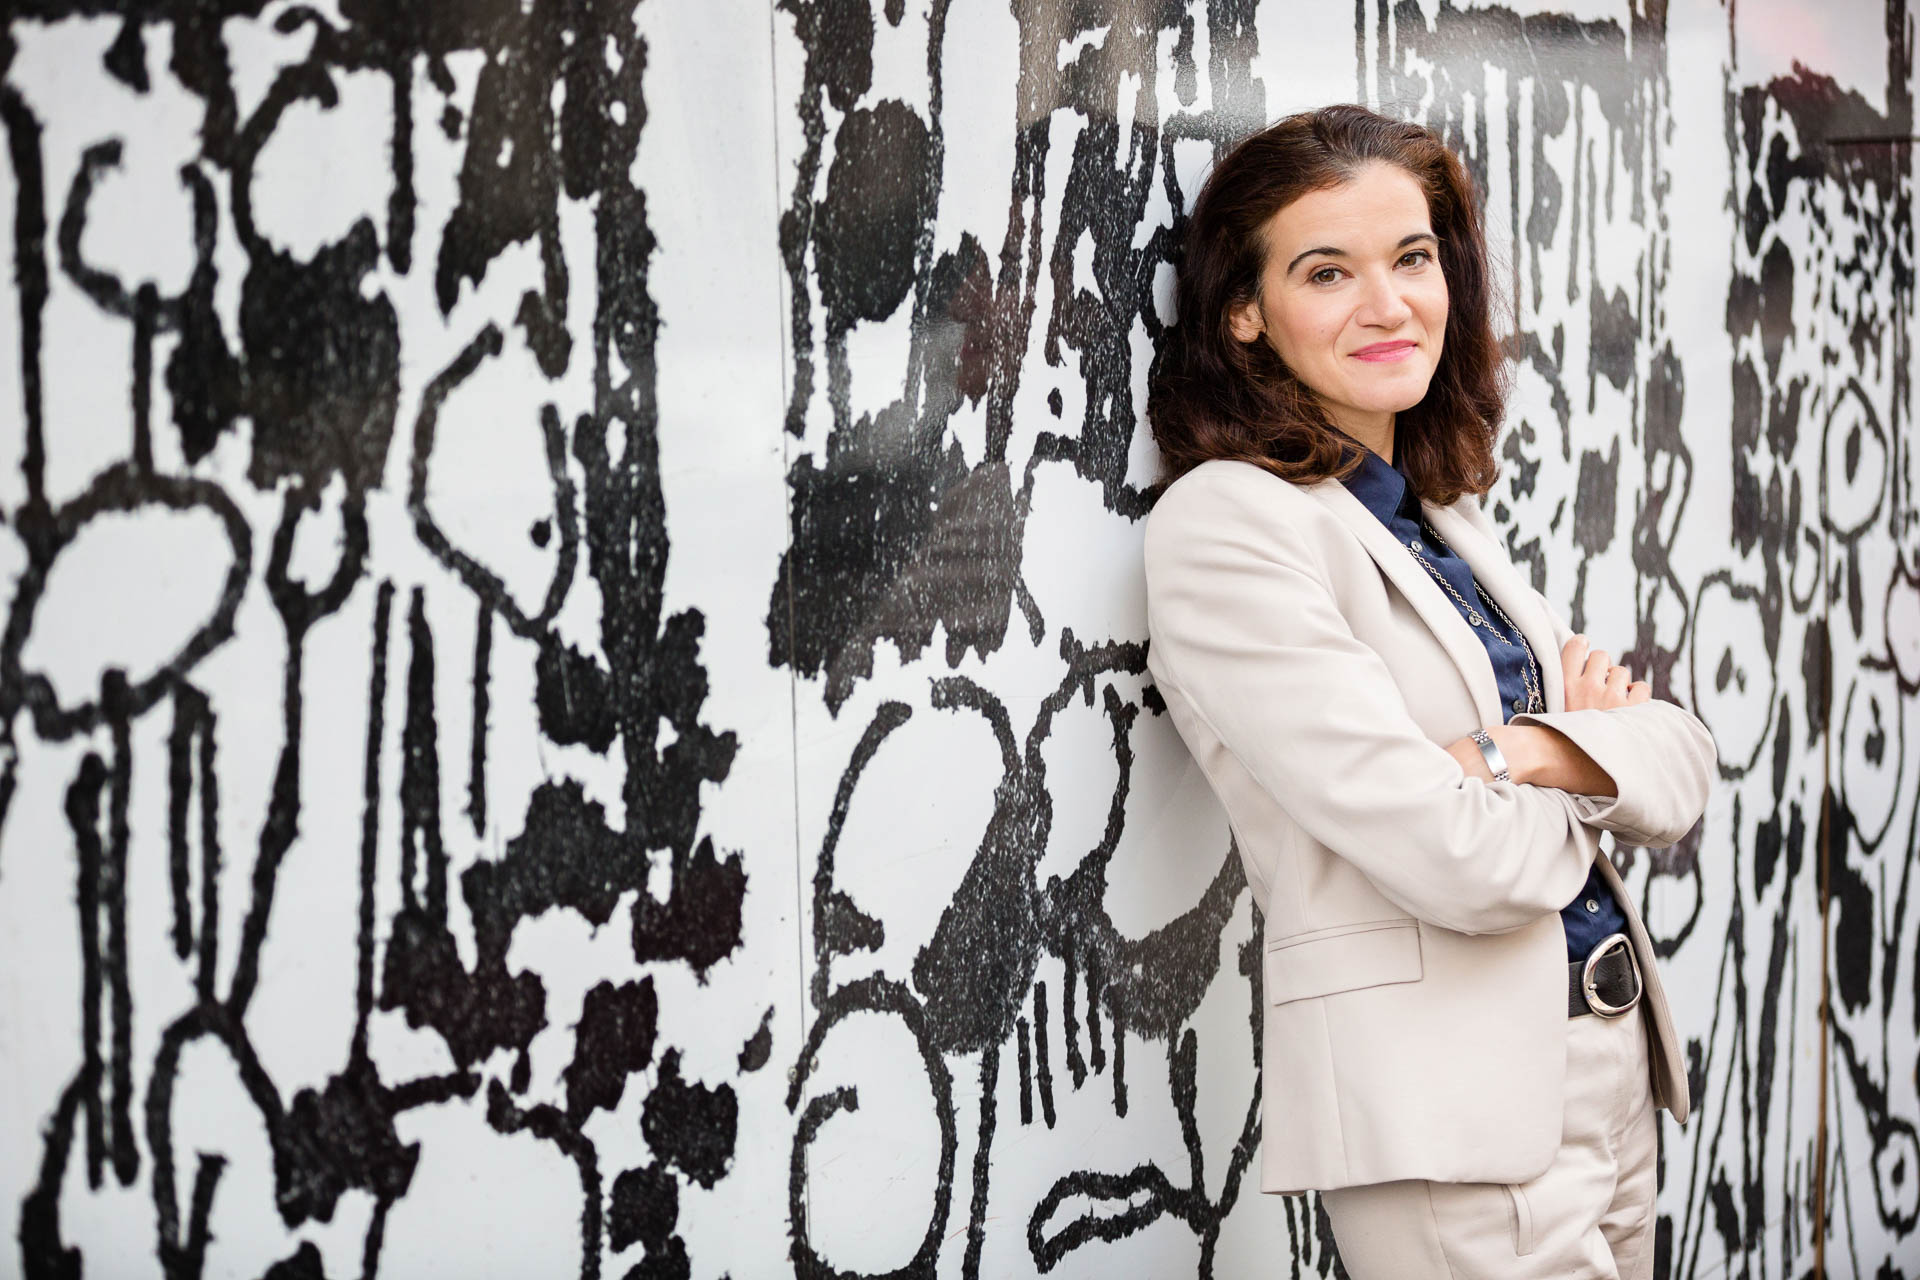 Poressional Headshot woman in trousersuit leaning against graffiti wall